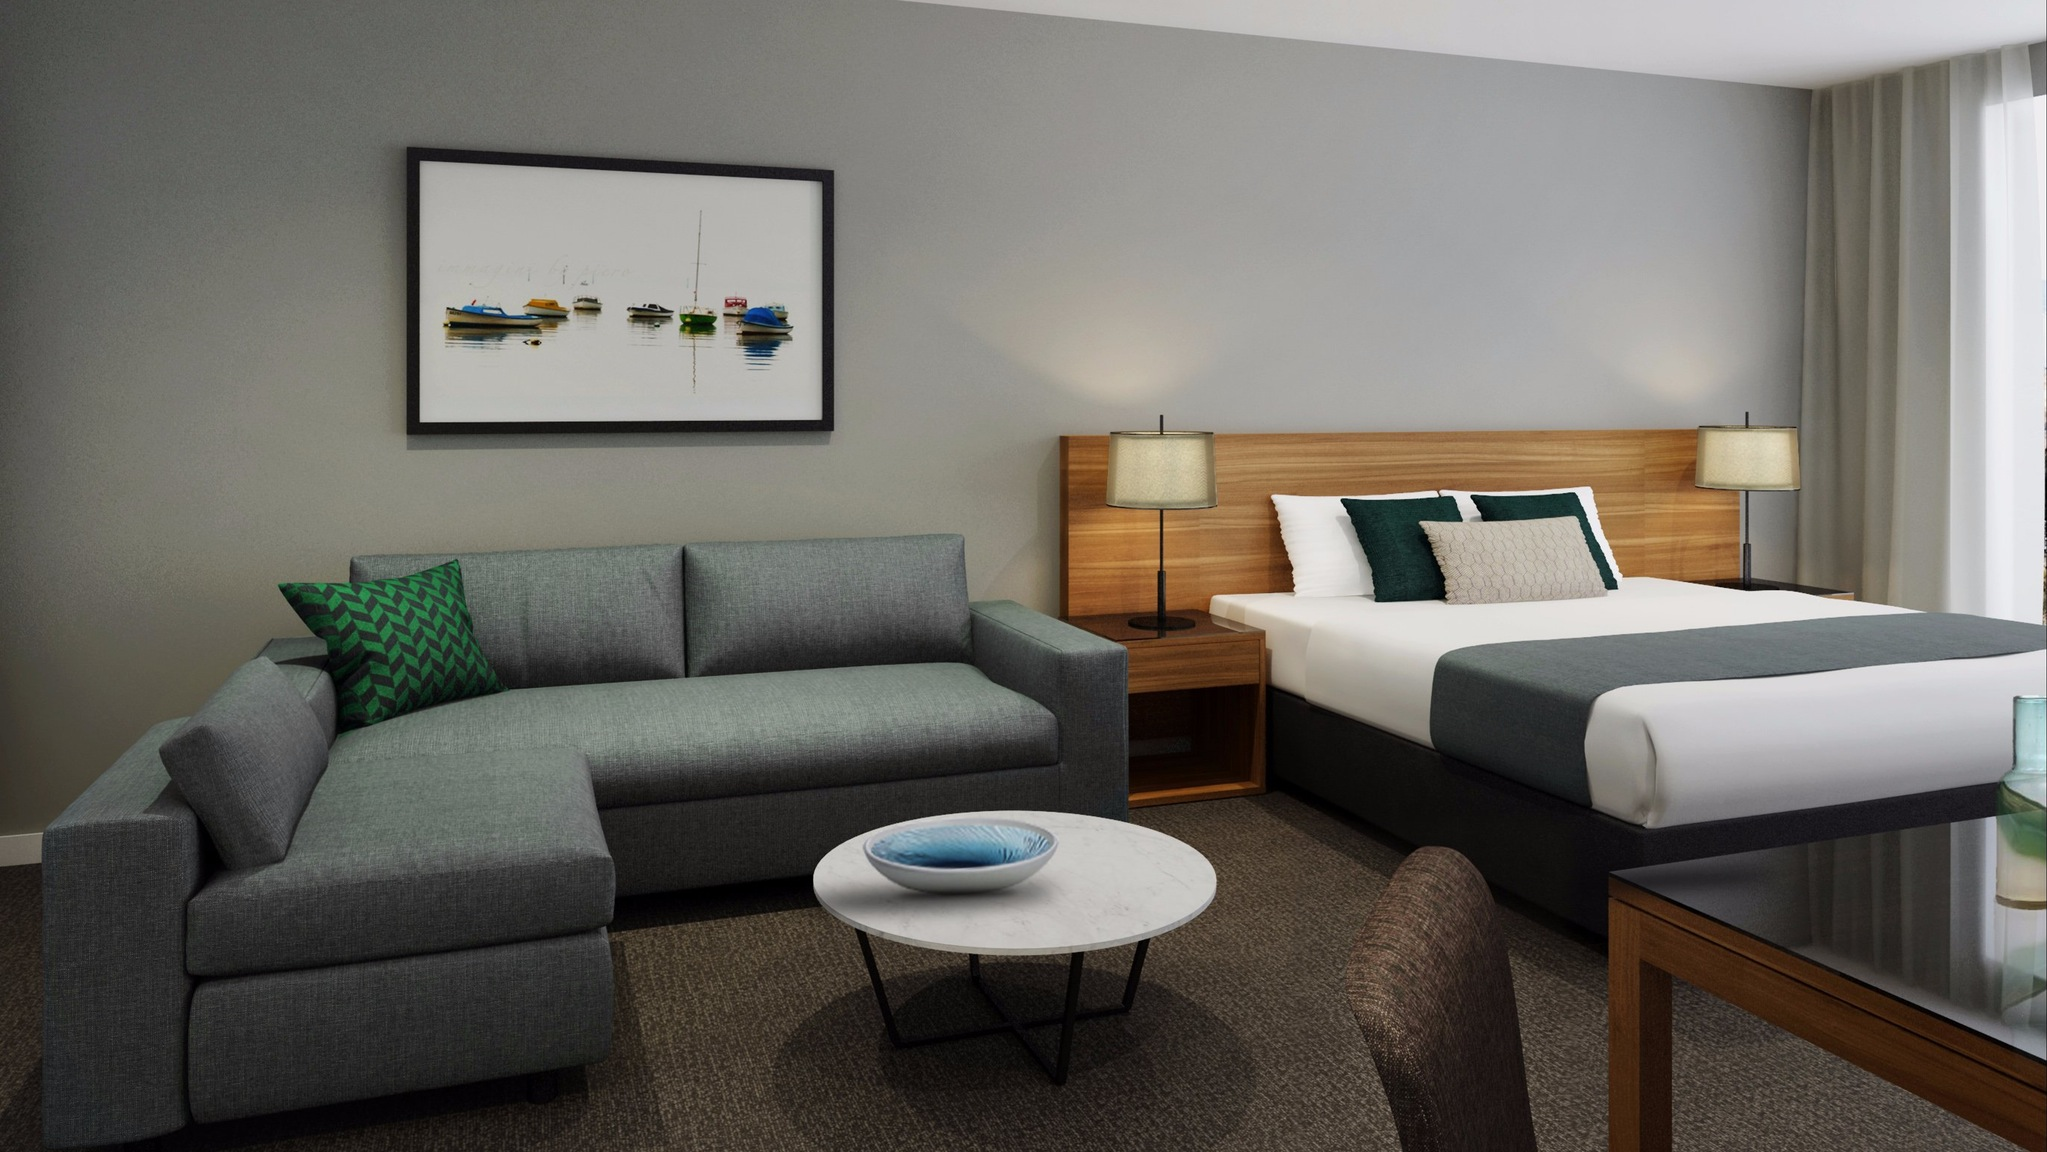 Hotel Rooms/Studios and Apartments